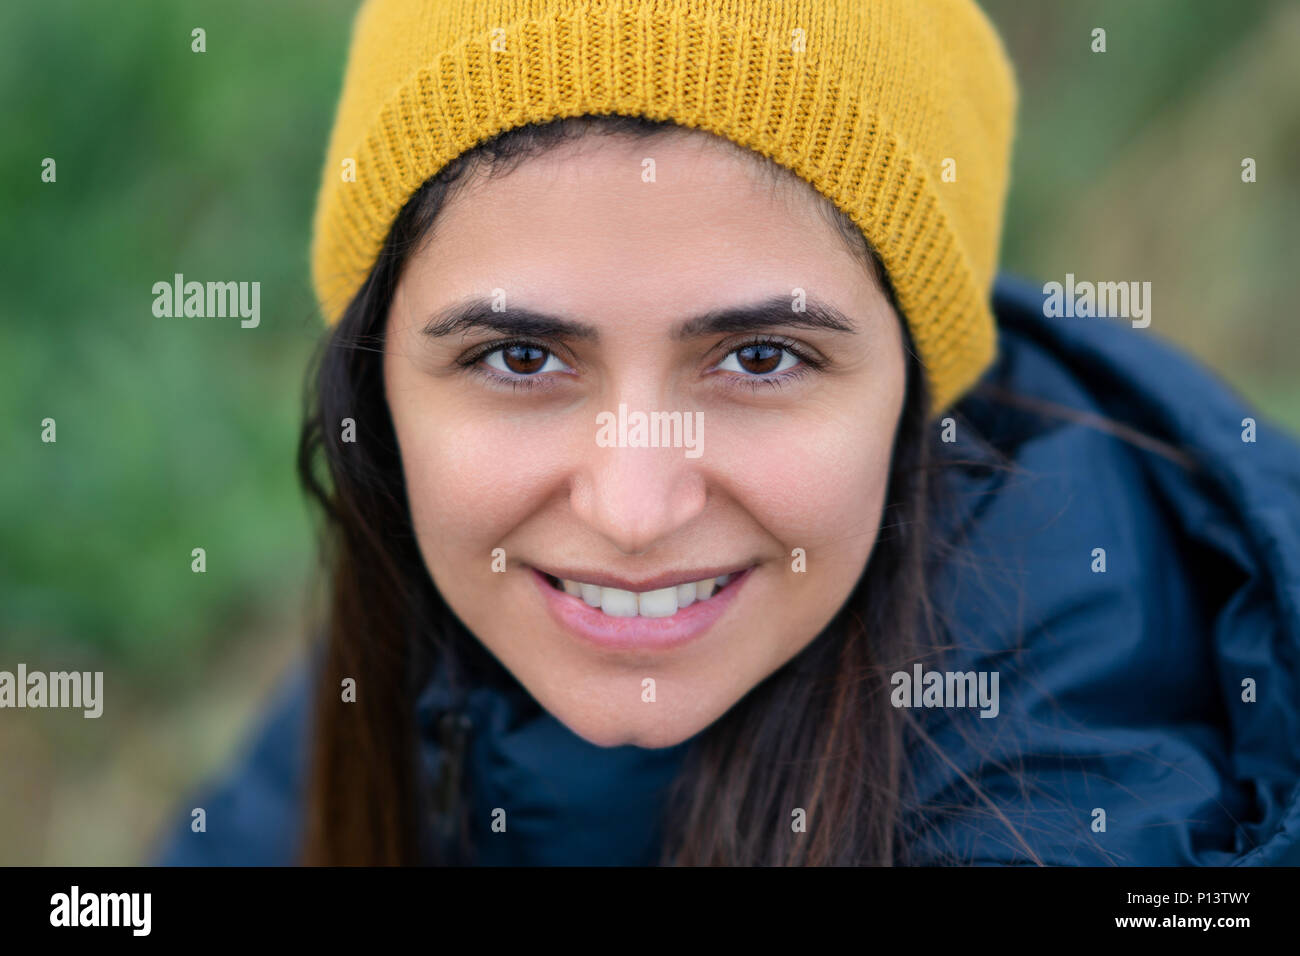 f6af6572 Young beautiful brunette woman smiling with yellow beret. - Stock Image